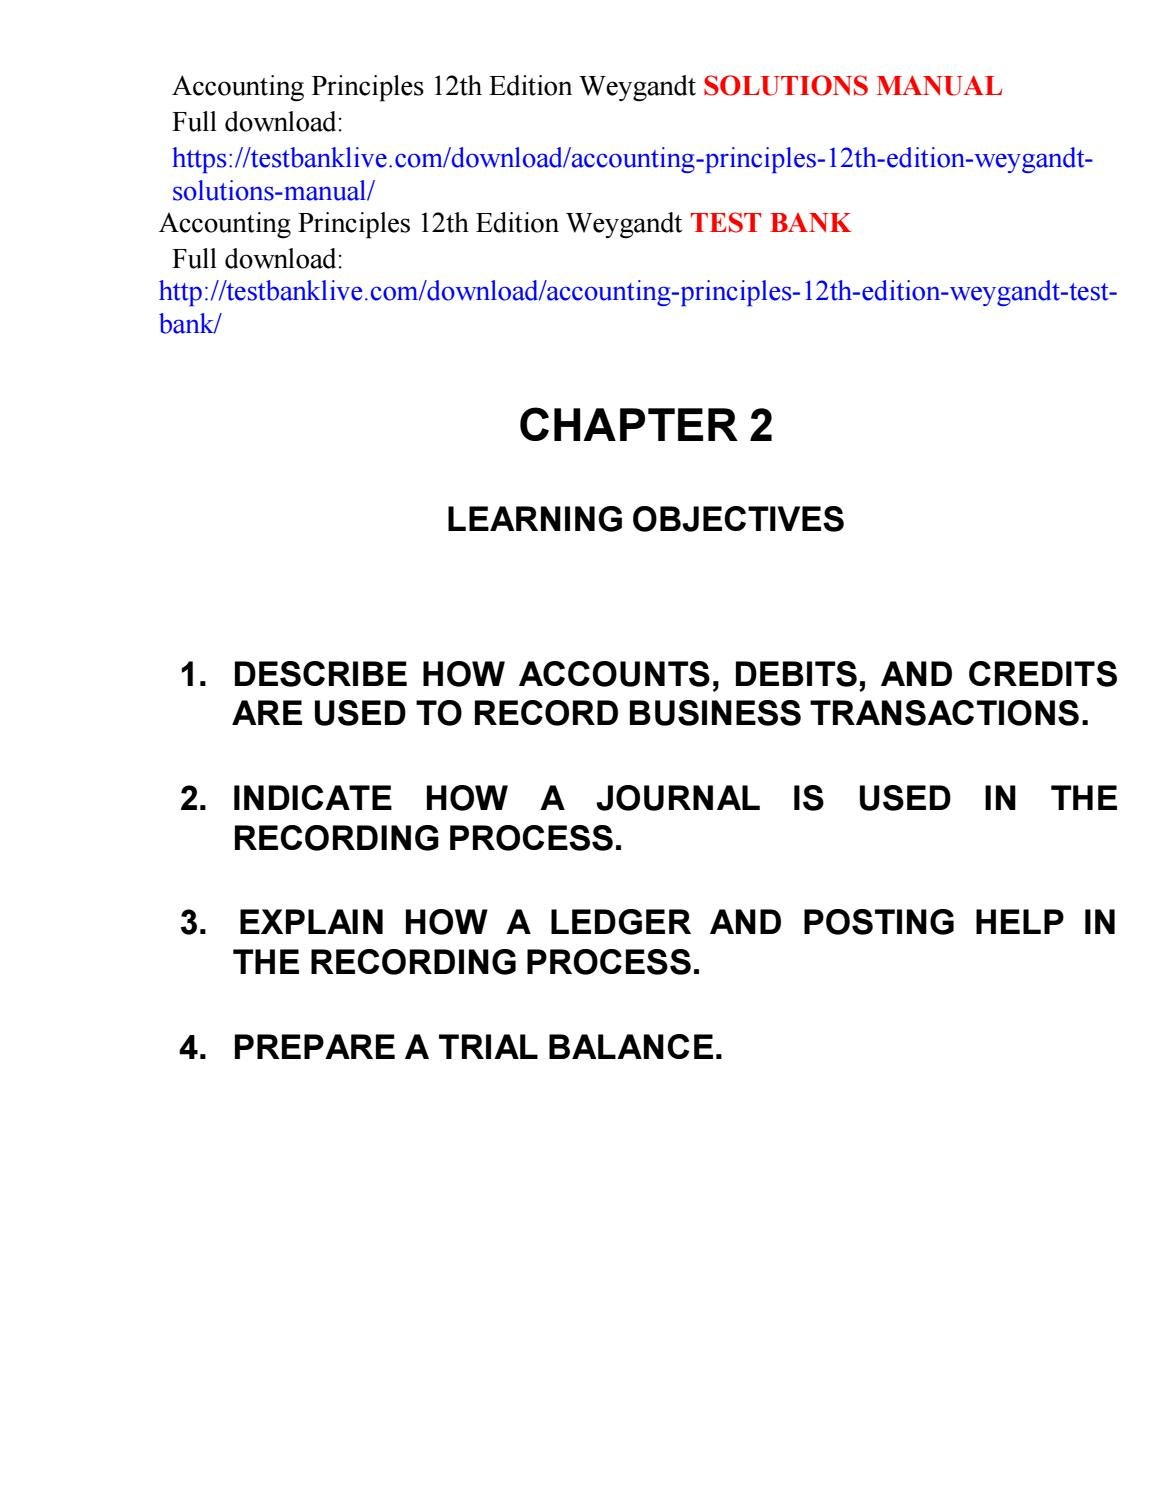 Accounting principles 12th edition weygandt solutions manual by garenni -  issuu